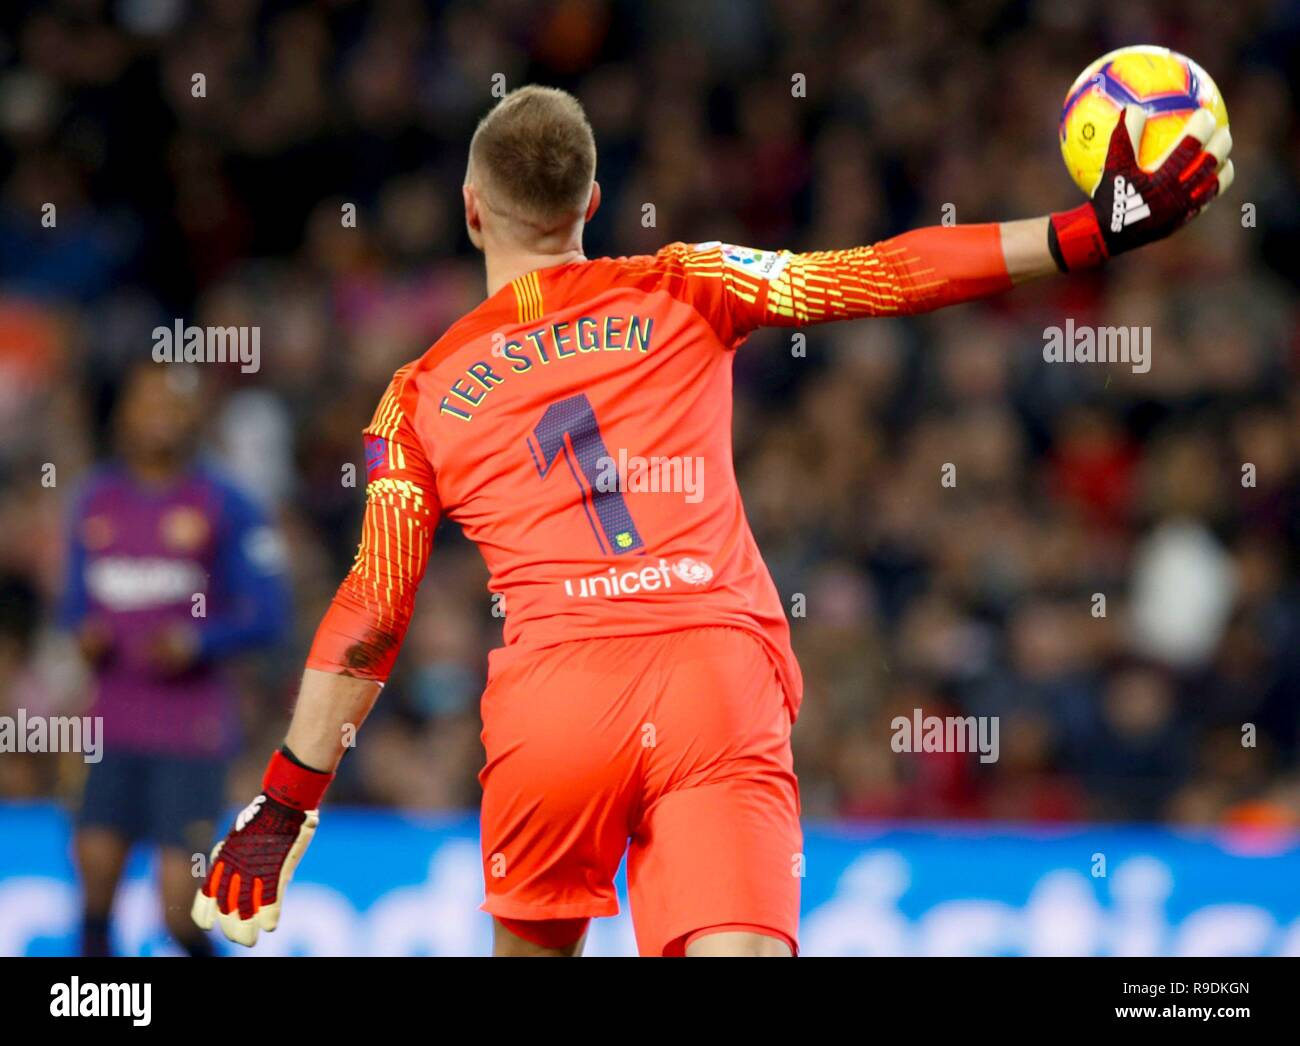 e64f374a5 German Goalkeeper Ter Stegen Stock Photos   German Goalkeeper Ter ...